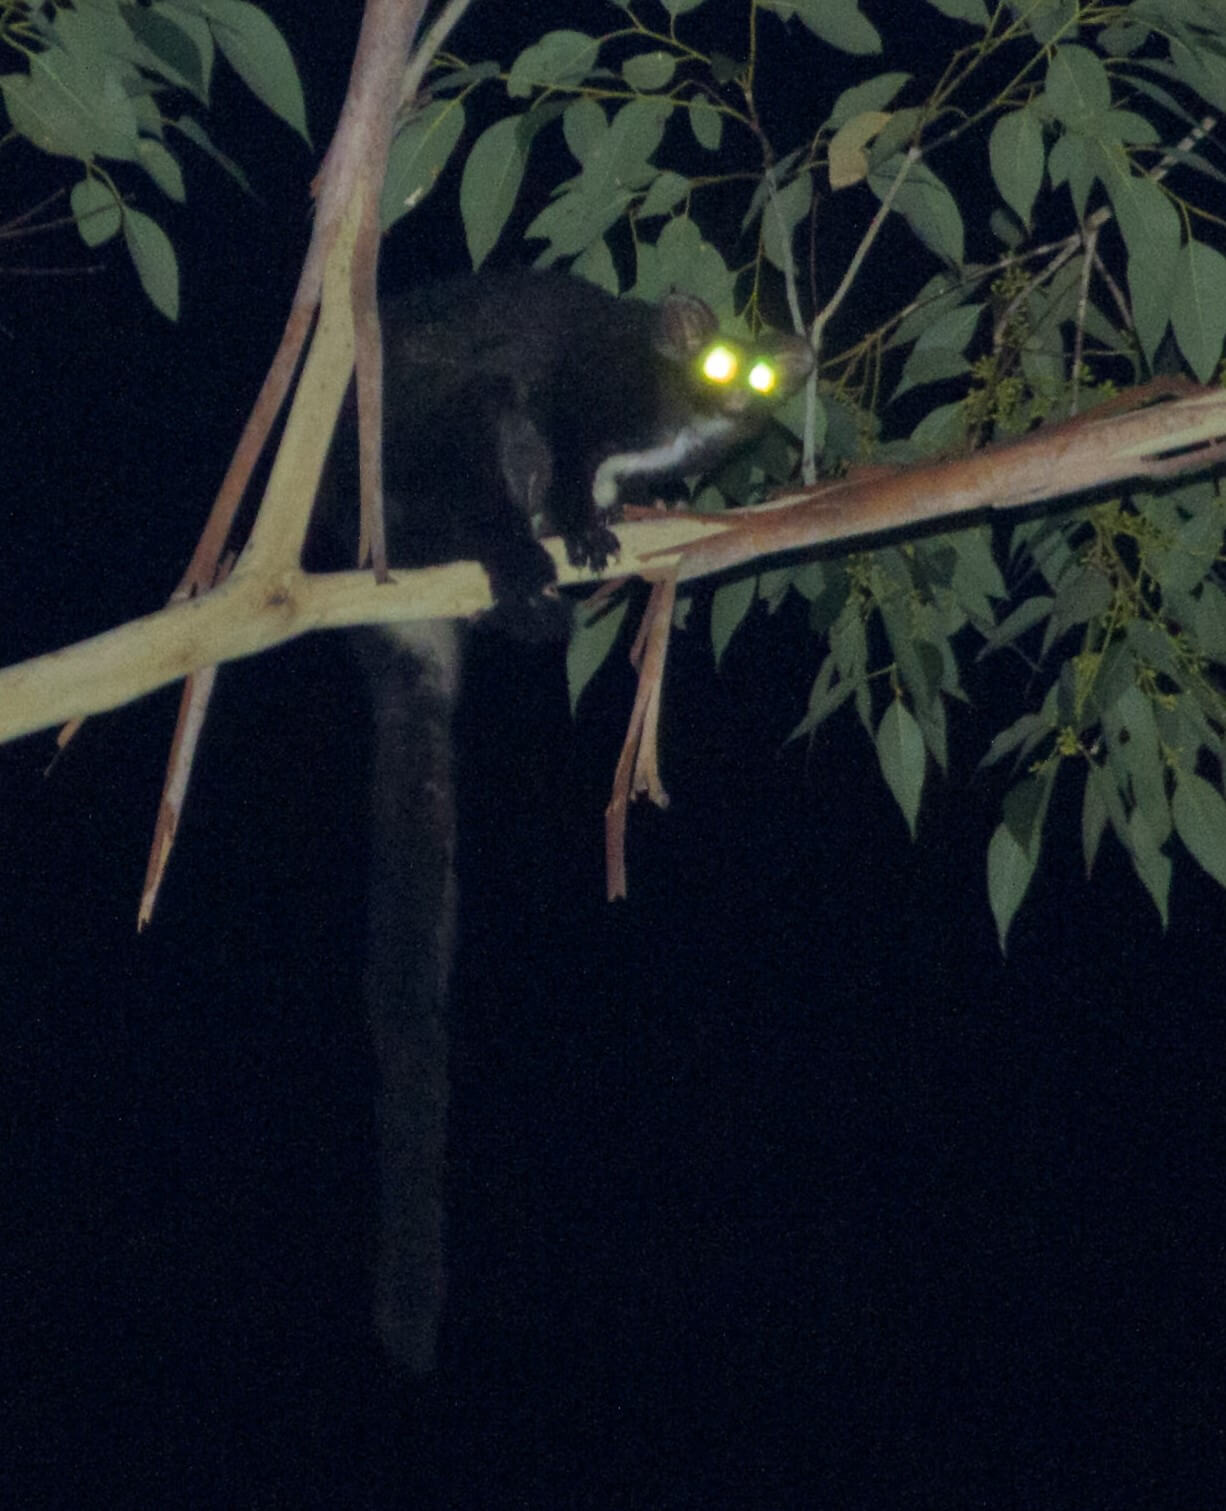 Greater Glider Peter Ridgeway Blue Gum Swamp Winmalee 12-6-2015